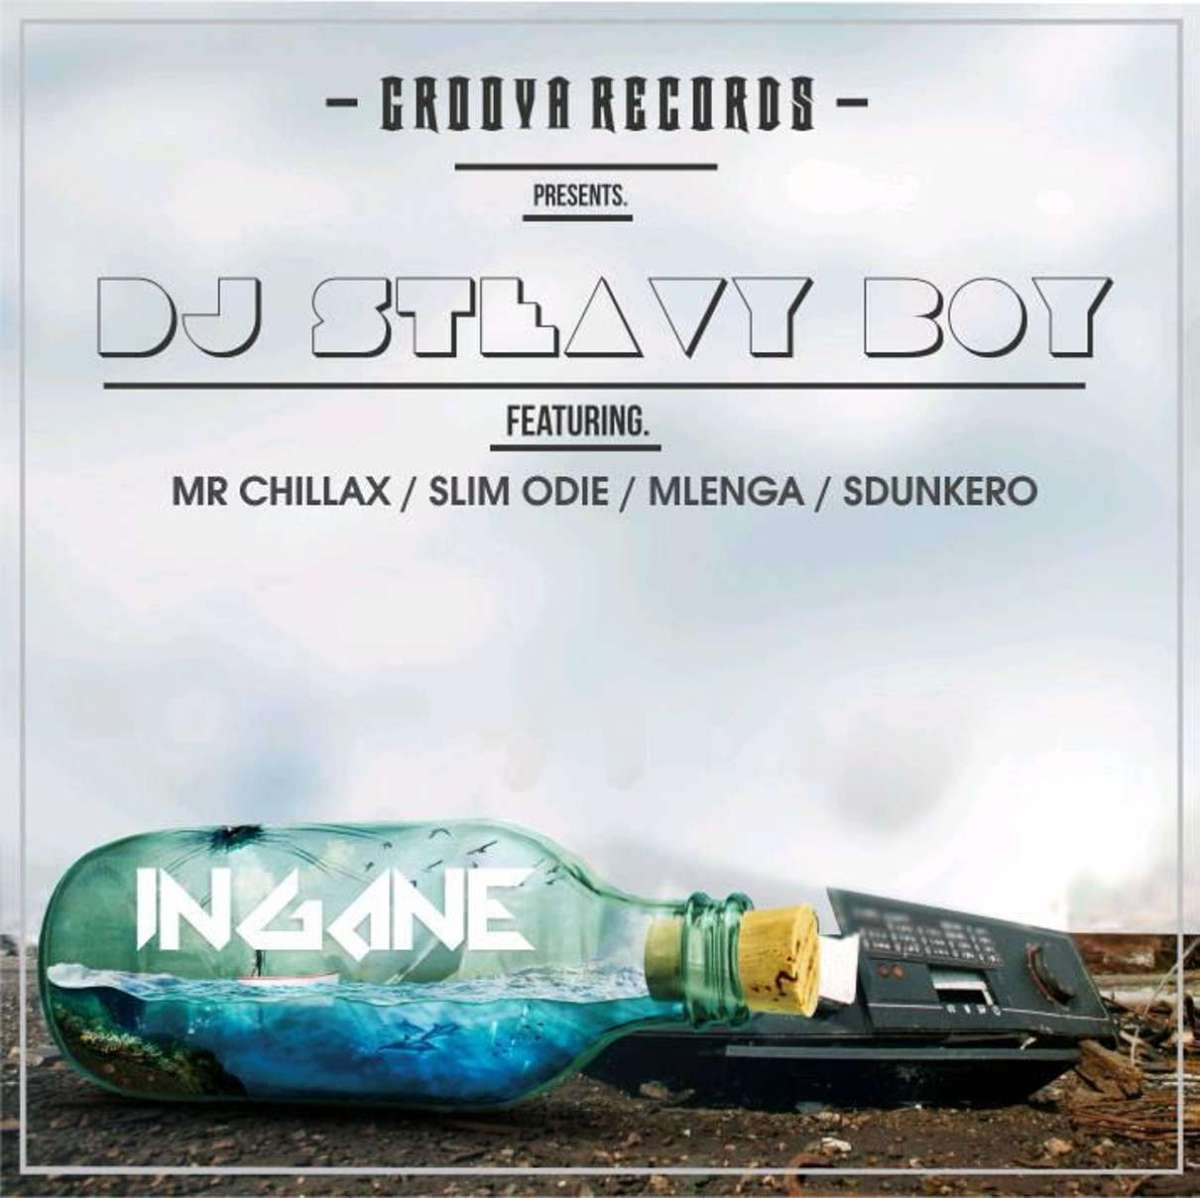 DJ Steavy Boy, Mr Chillax, Slim Odie, Mlenga & Sdunkero - Ingane (Original Mix)